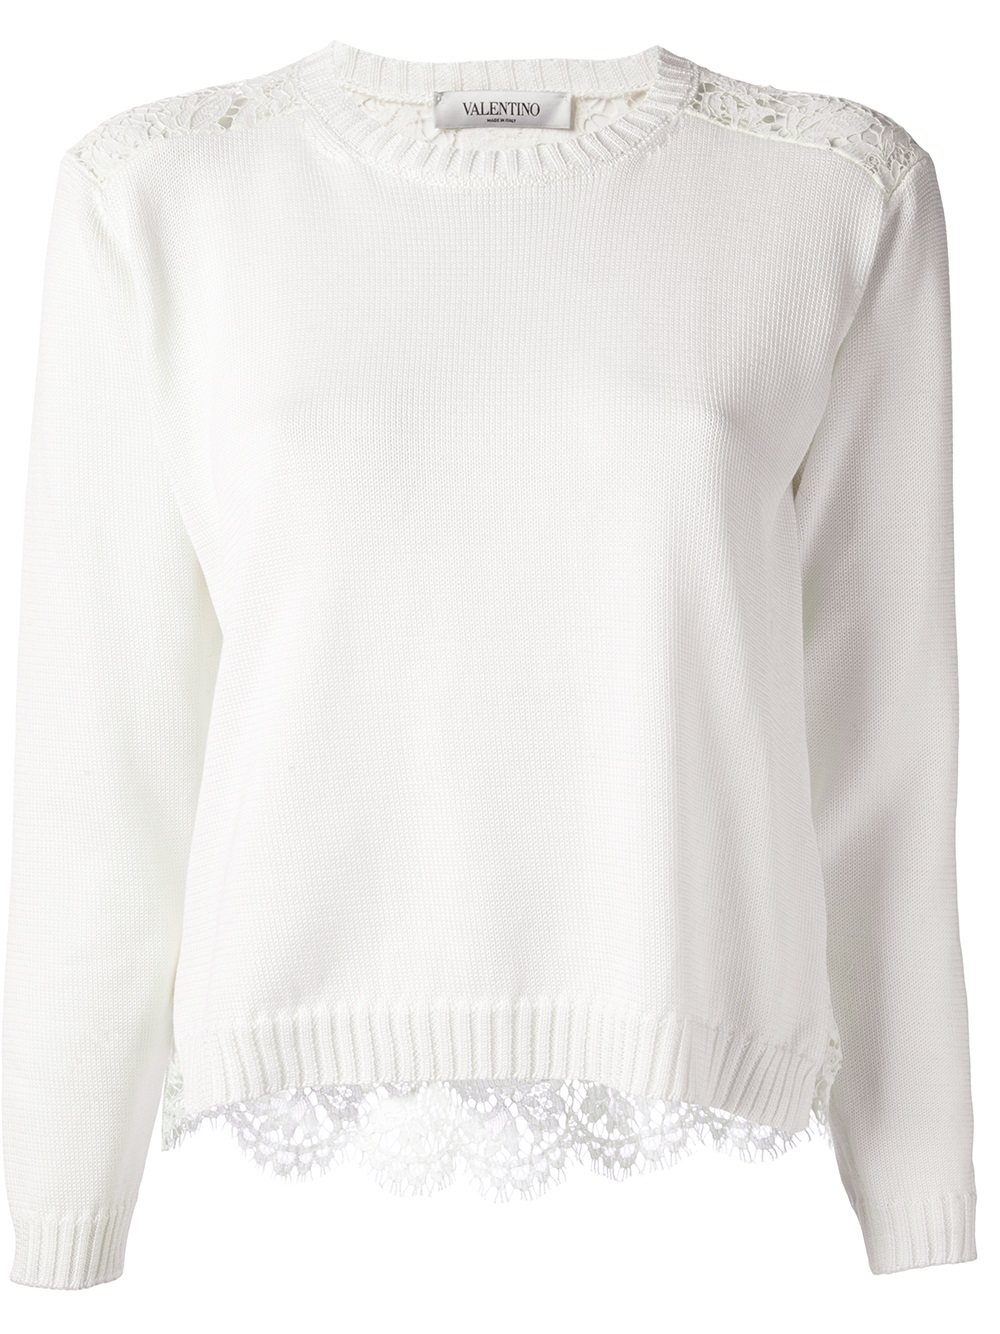 Valentino Lace Panel Sweater in White | Lyst